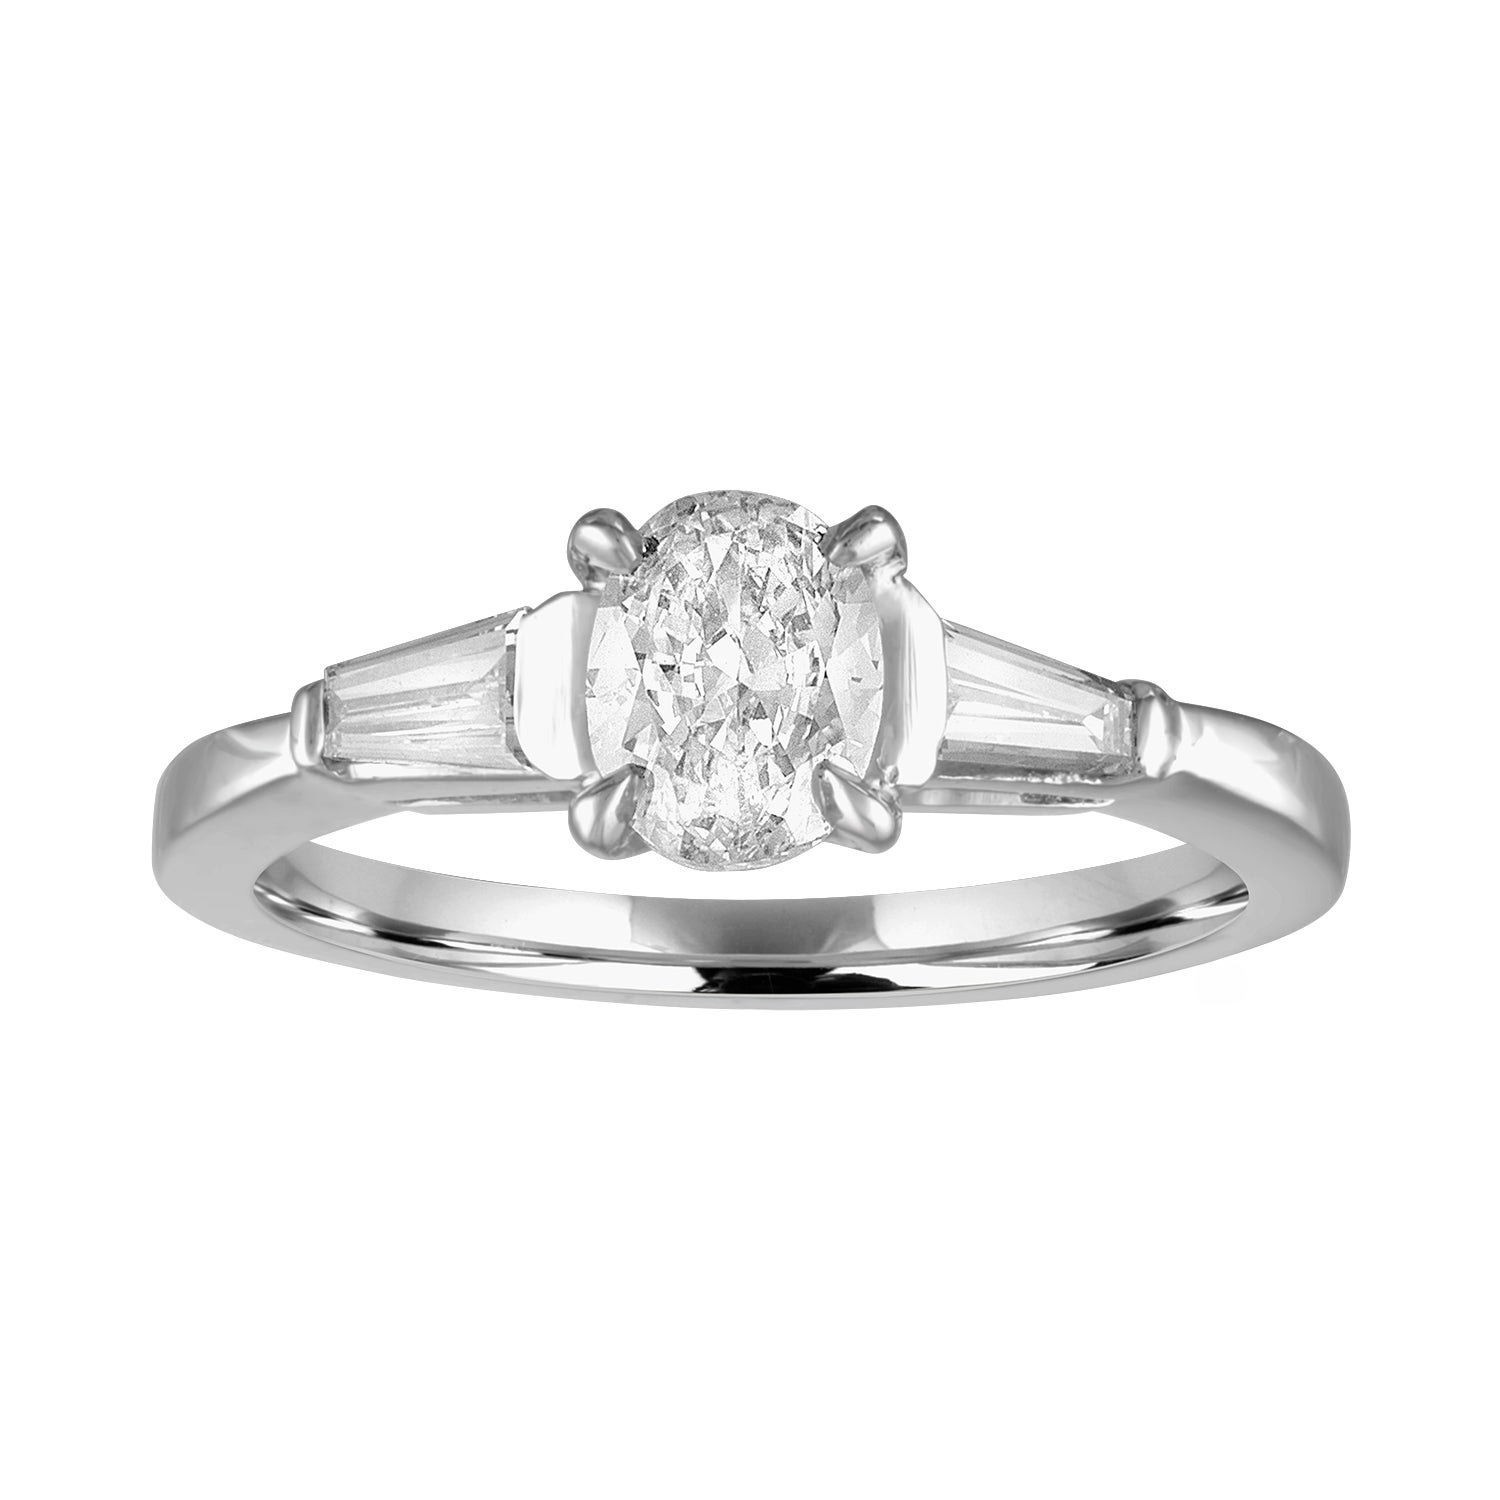 0.51 Carat Oval Diamond Platinum Engagement Ring